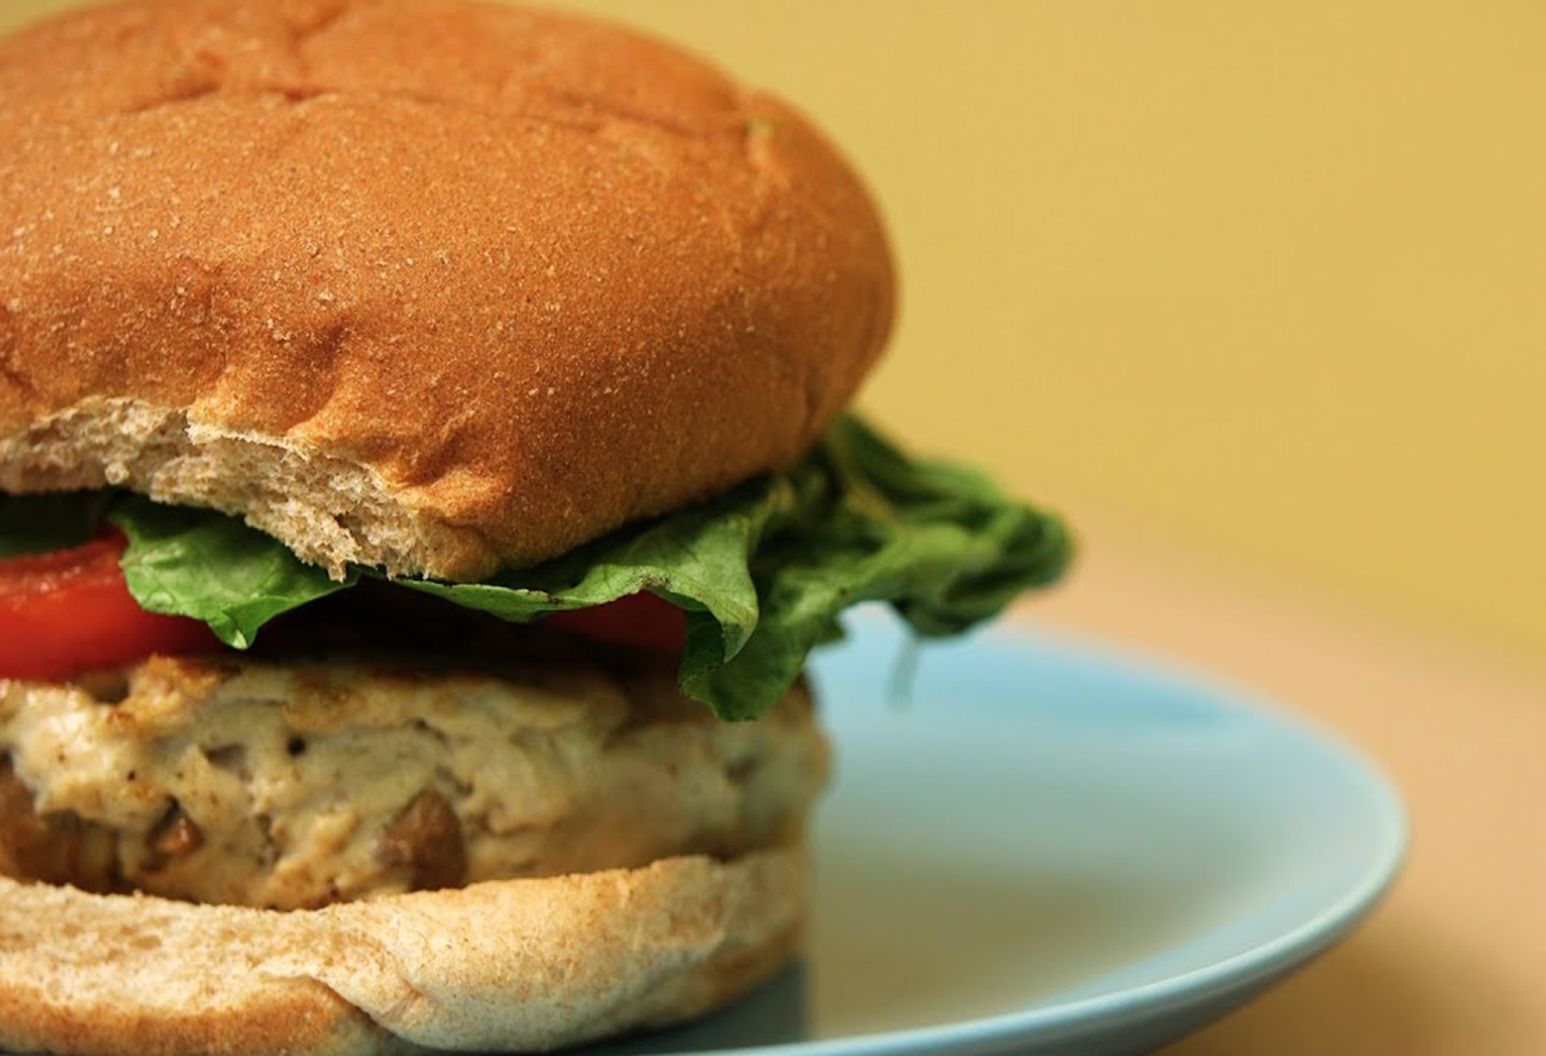 One taste of our tantalizing turkey burger mixed with mushrooms, and you won't even miss the beef! |